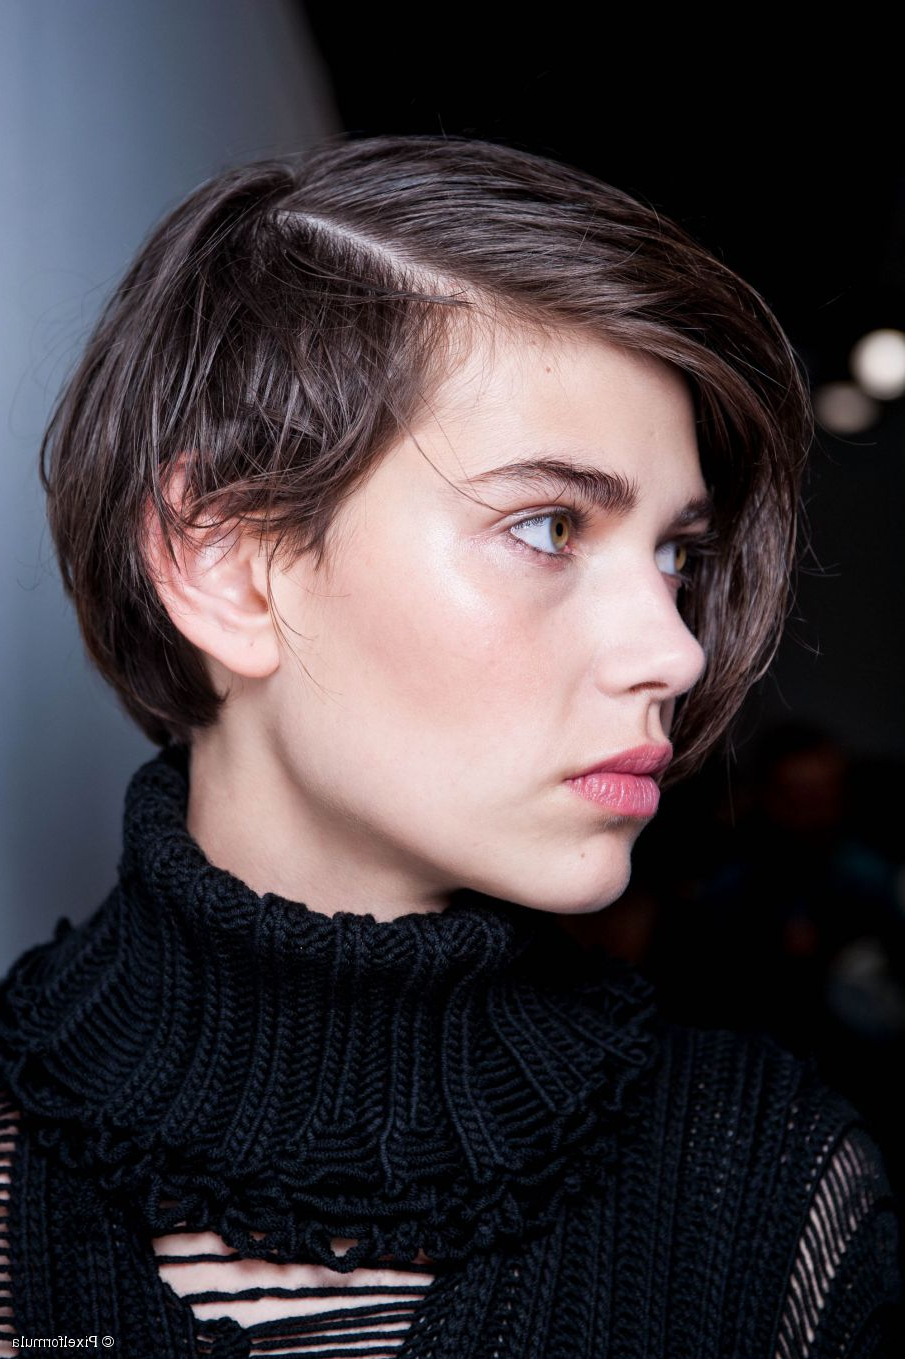 Sleek, Short Hair Tutorial: Try A Deep Side Part Regarding Short Haircuts With Side Part (Gallery 2 of 20)